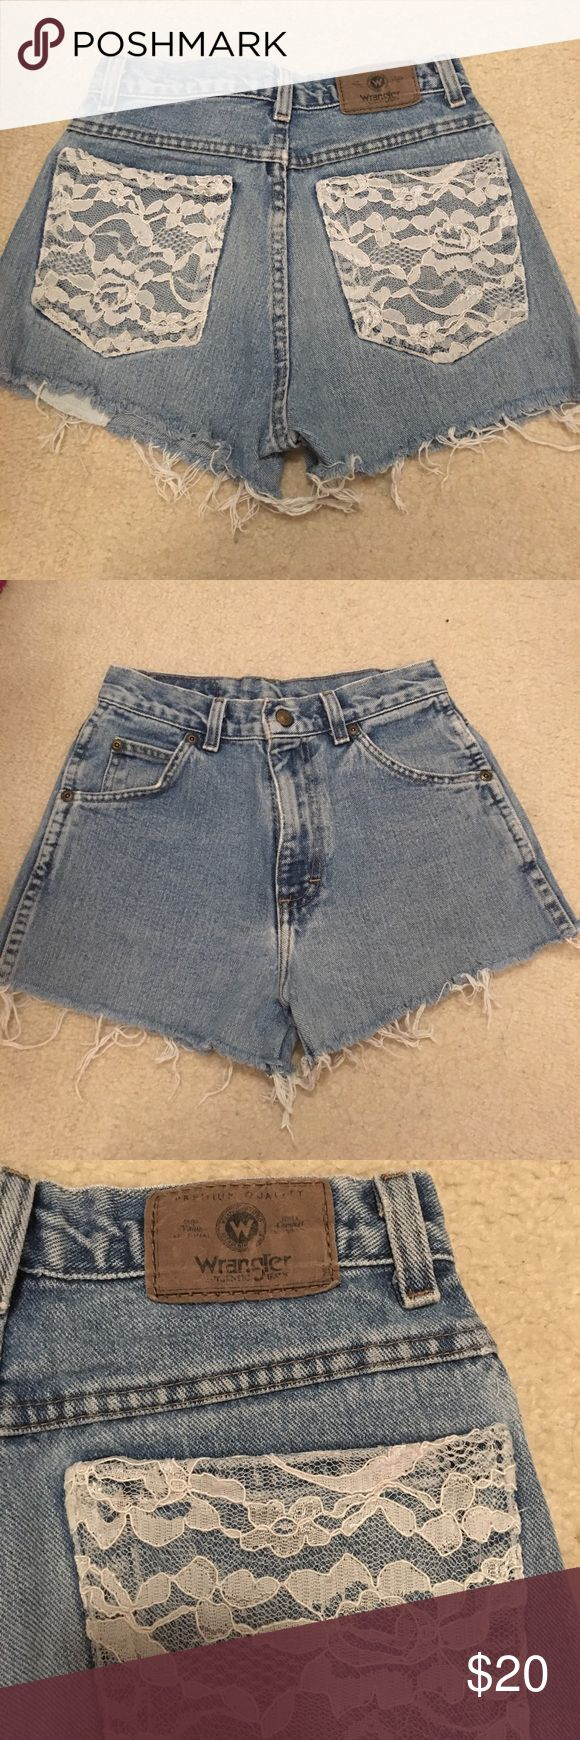 Lace Pocket Ripped Jean shorts Light wash, frayed bottoms, lace pockets. Originally DIY-ed with Wrangler jeans. Perfect condition. Willing to negotiate!! Wrangler Shorts Jean Shorts